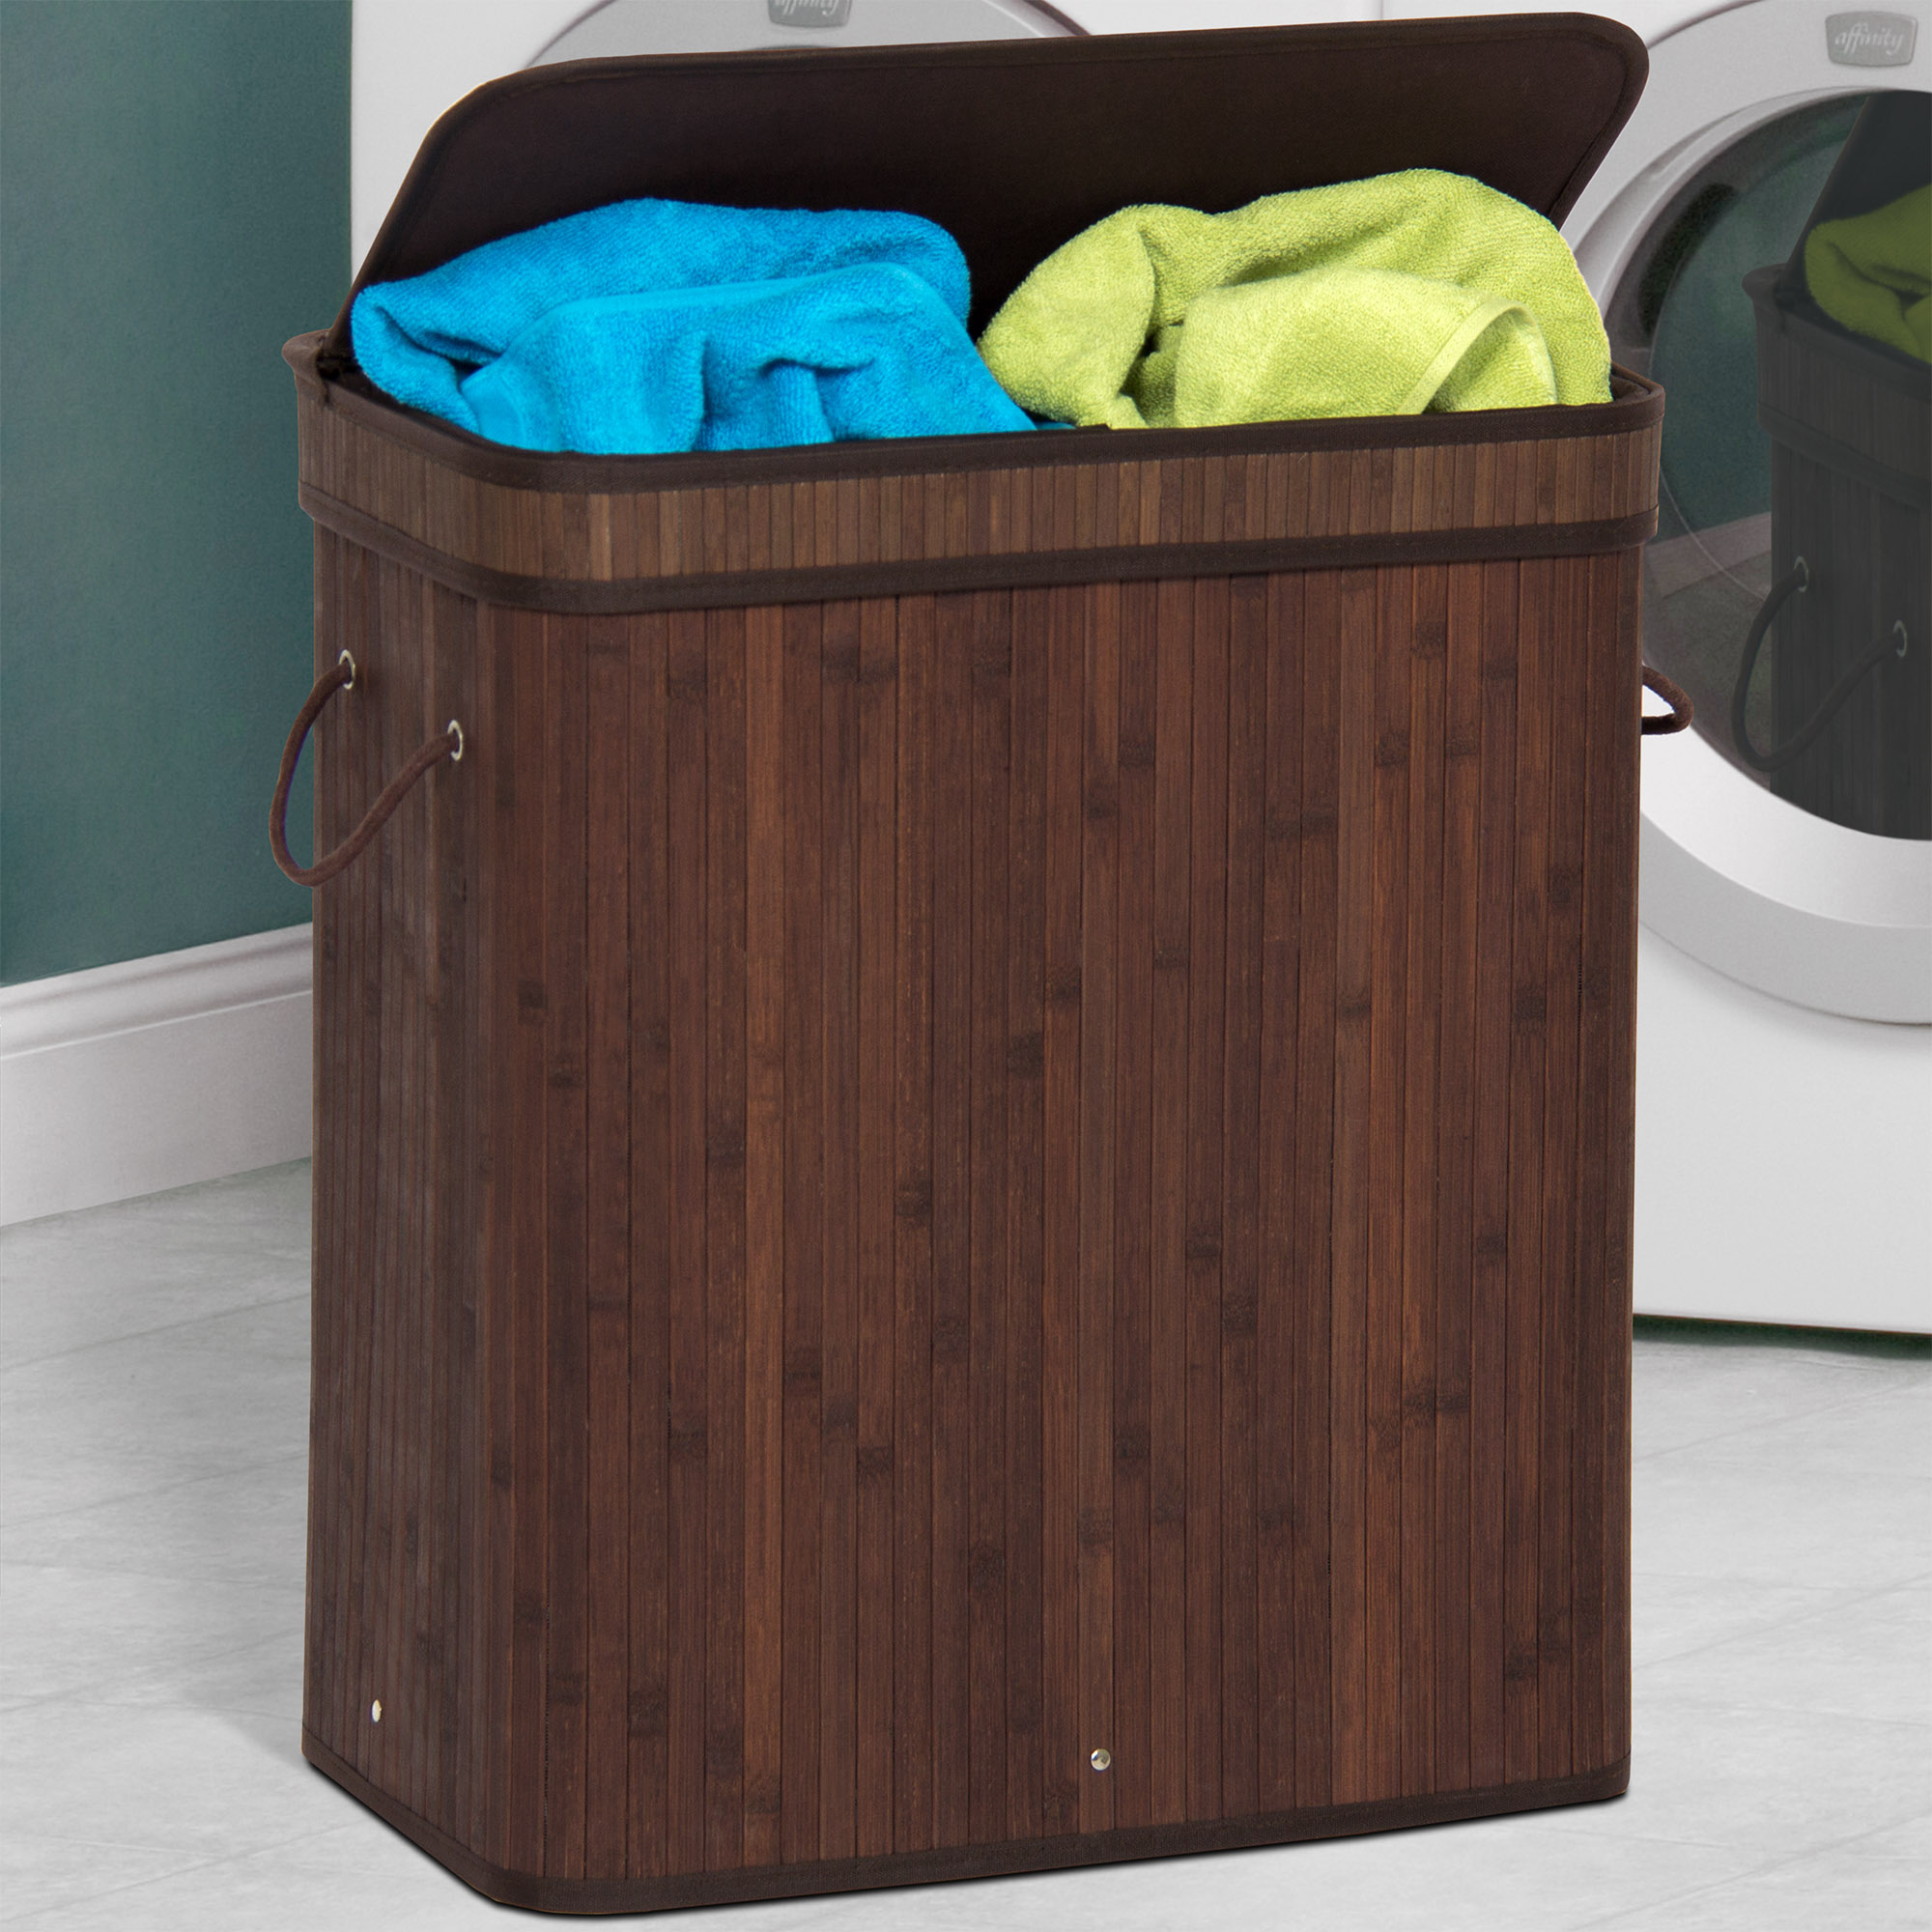 Best Choice Products Foldable Double Section Bamboo Hamper Laundry Basket w  Removable Liner Bag Dark Brown by Best Choice Products